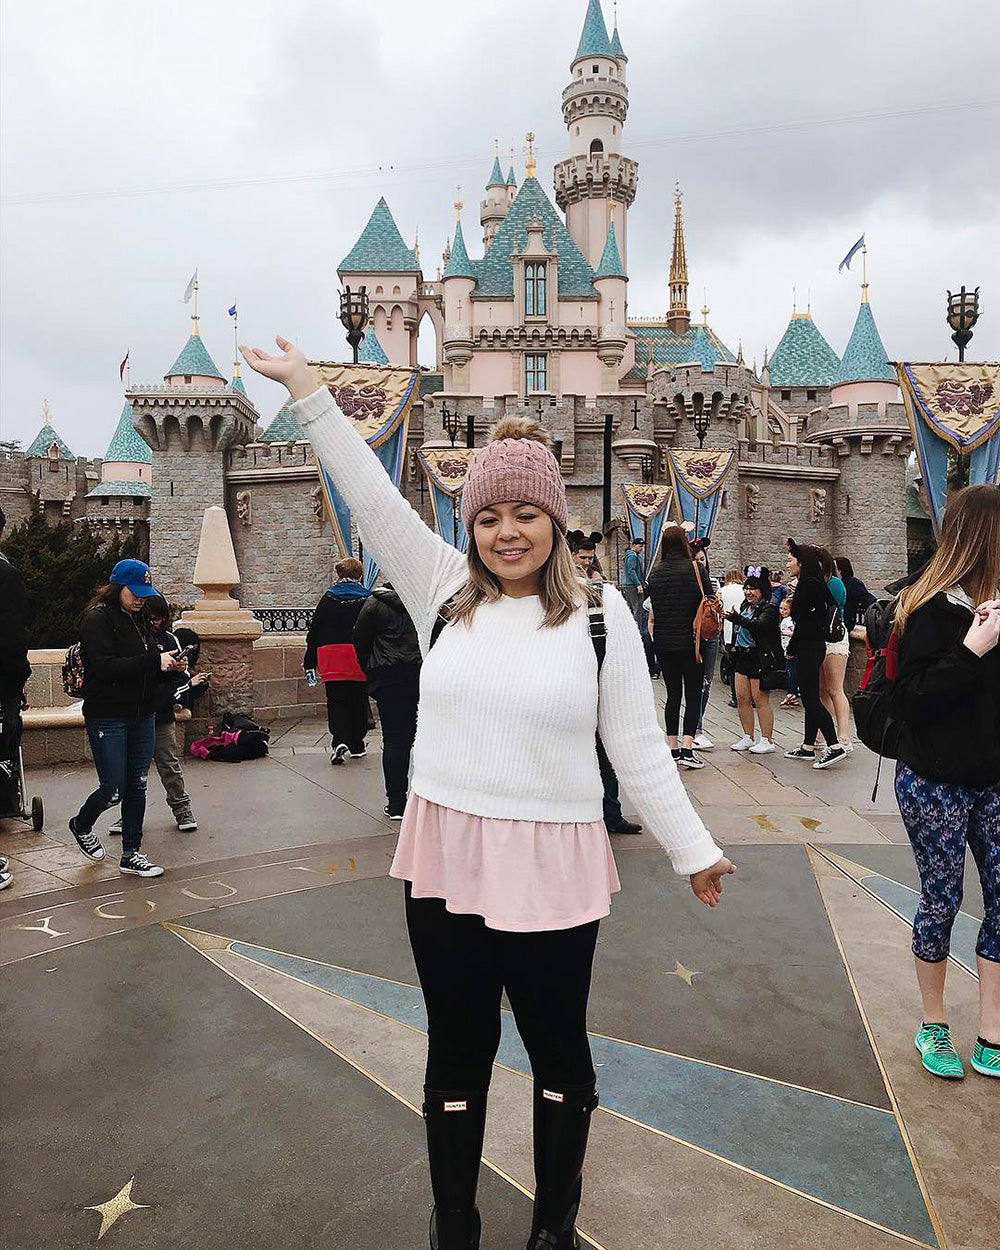 Having a blast at Disneyland on a cold winters day! Rocking the cutest pom beanie to keep my head warm all day long.